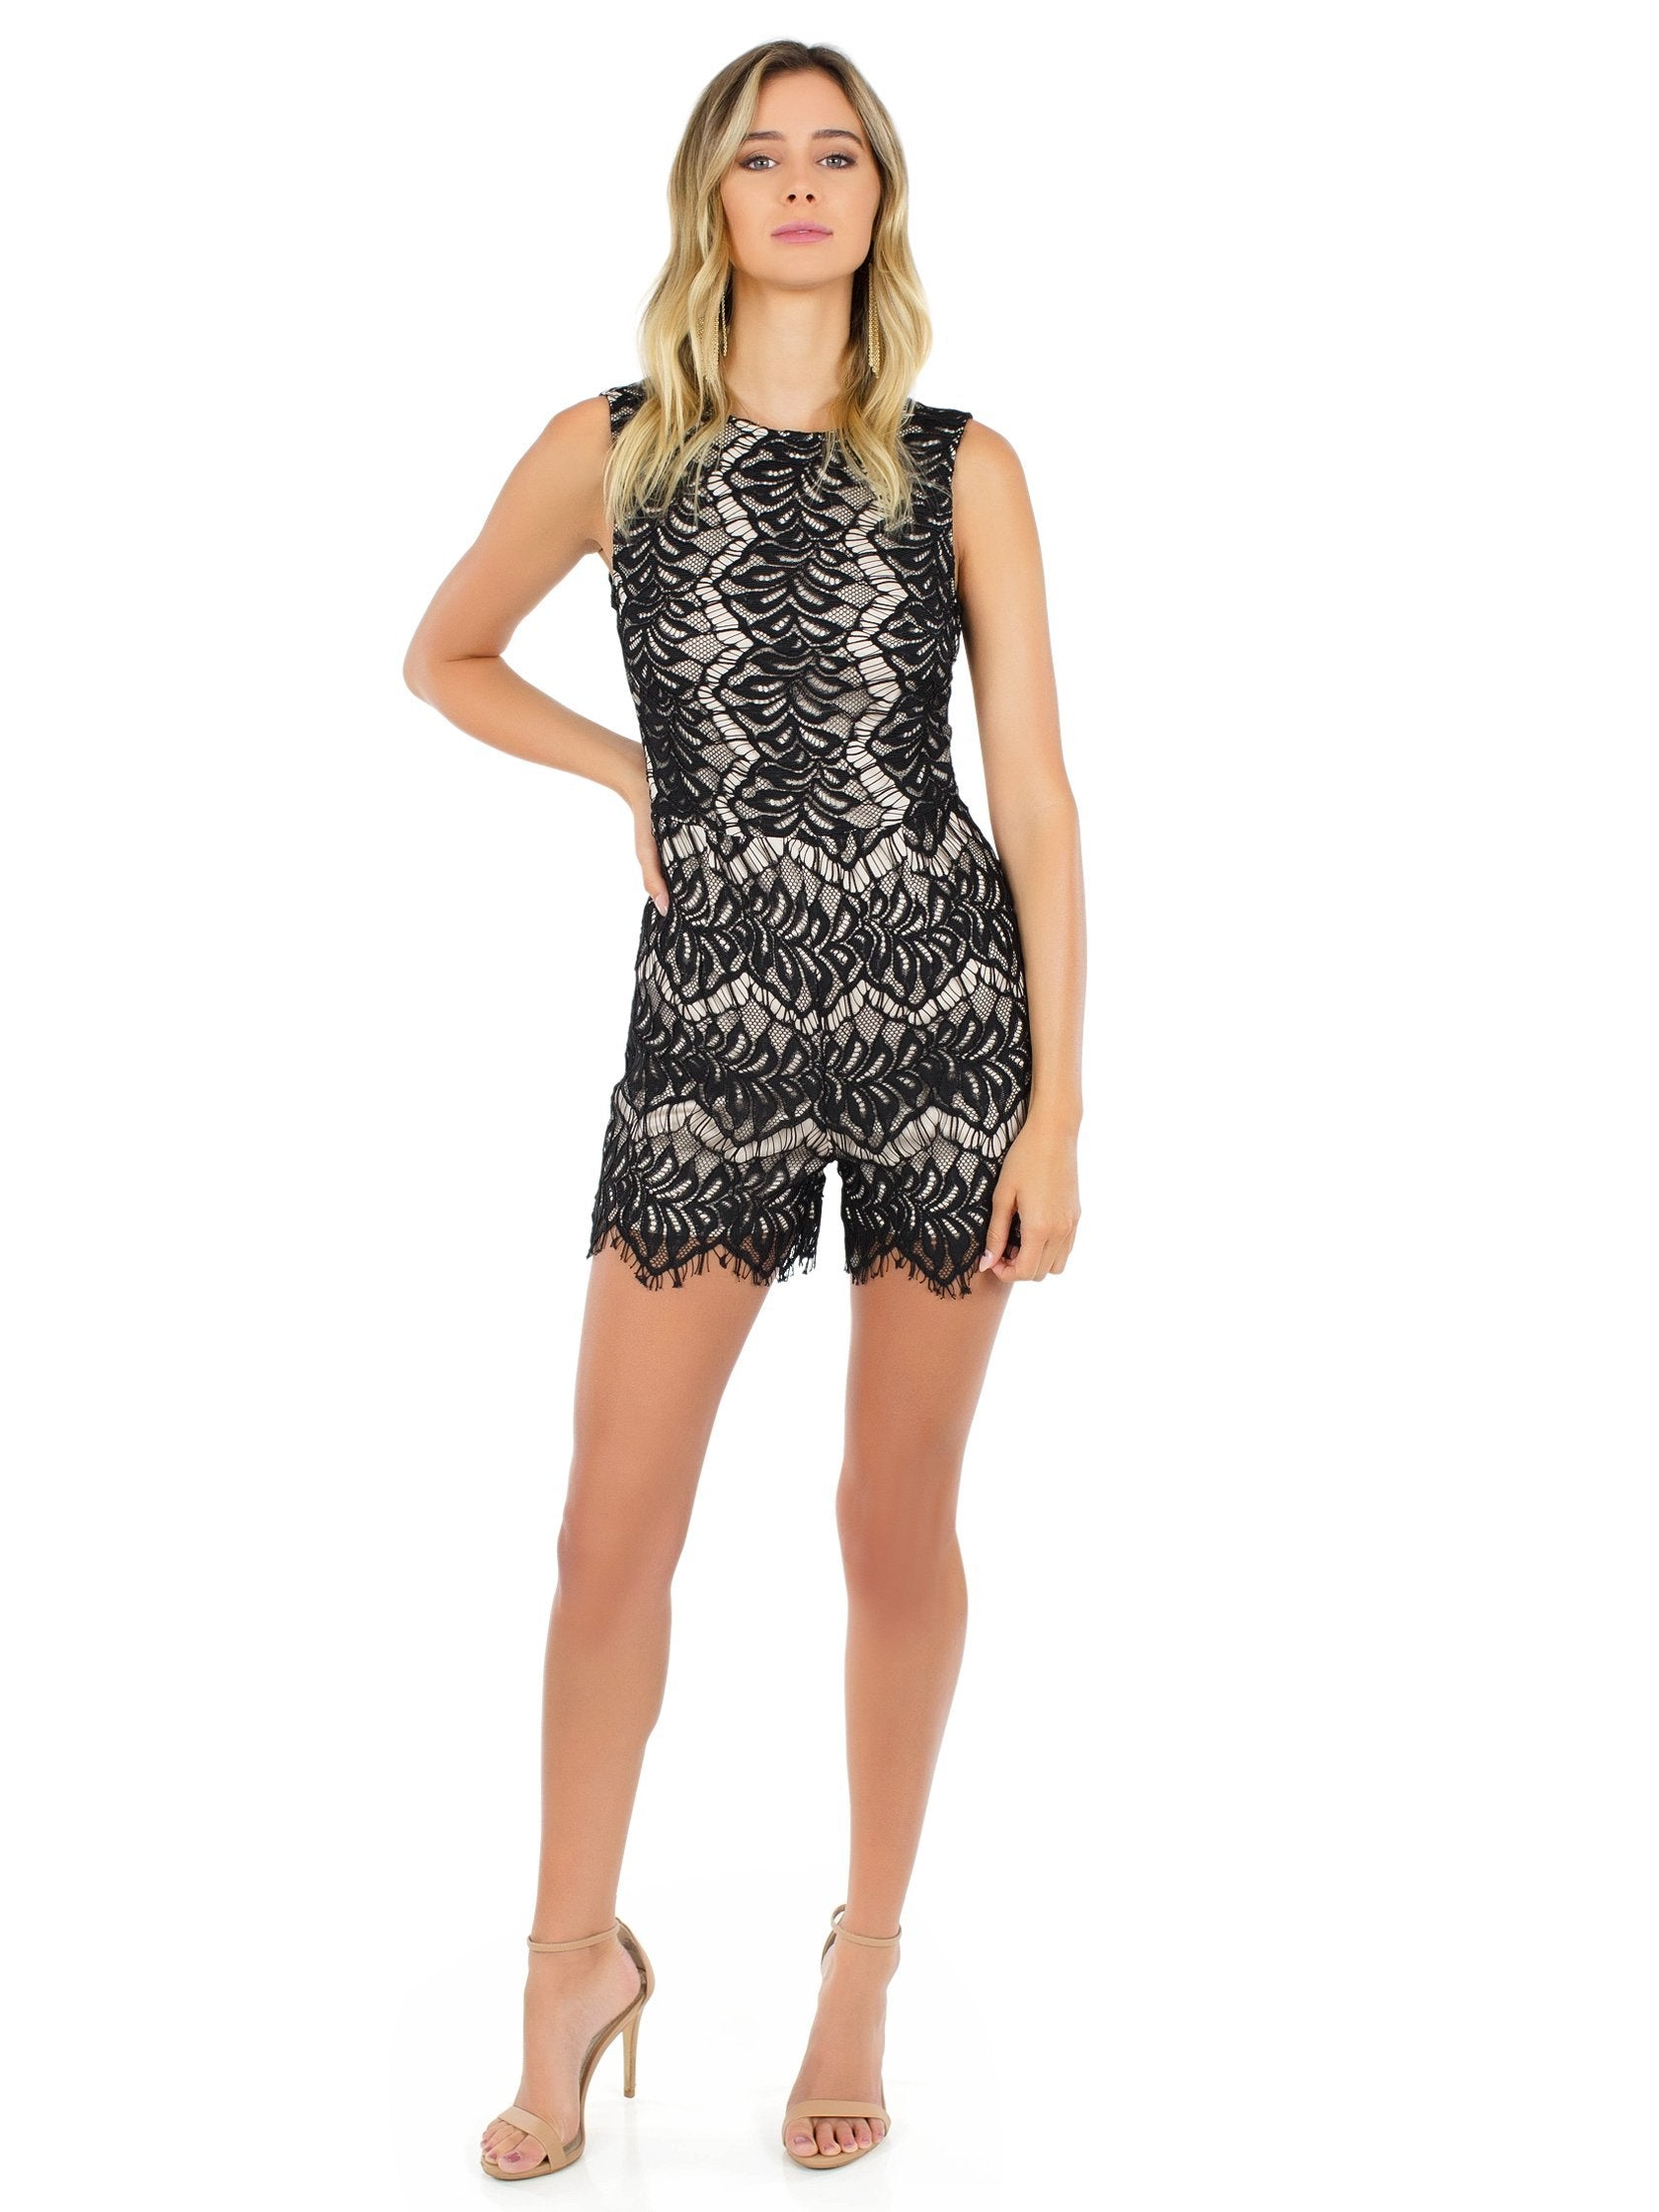 Girl outfit in a romper rental from WYLDR called Get Up Playsuit